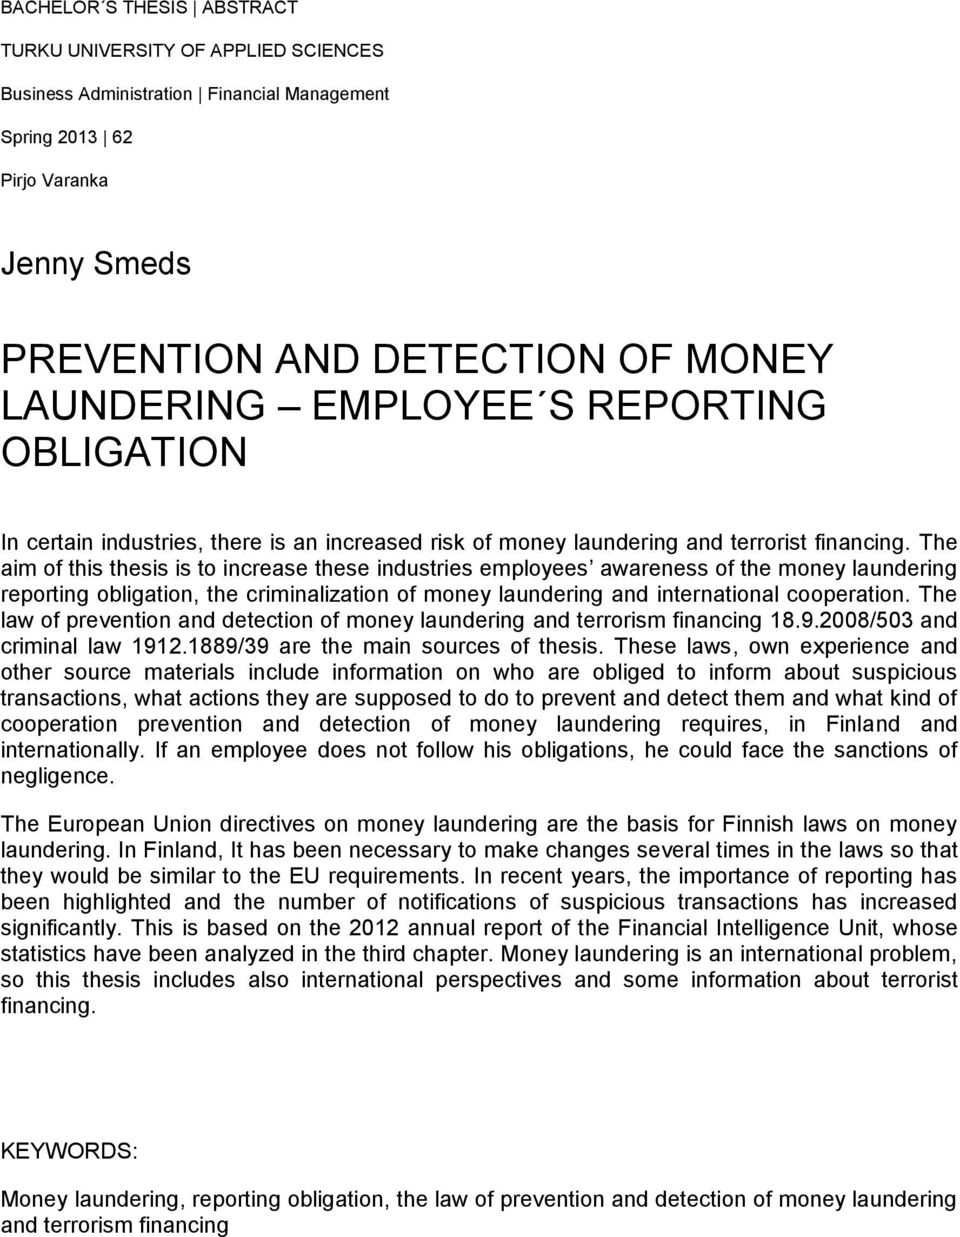 The aim of this thesis is to increase these industries employees awareness of the money laundering reporting obligation, the criminalization of money laundering and international cooperation.